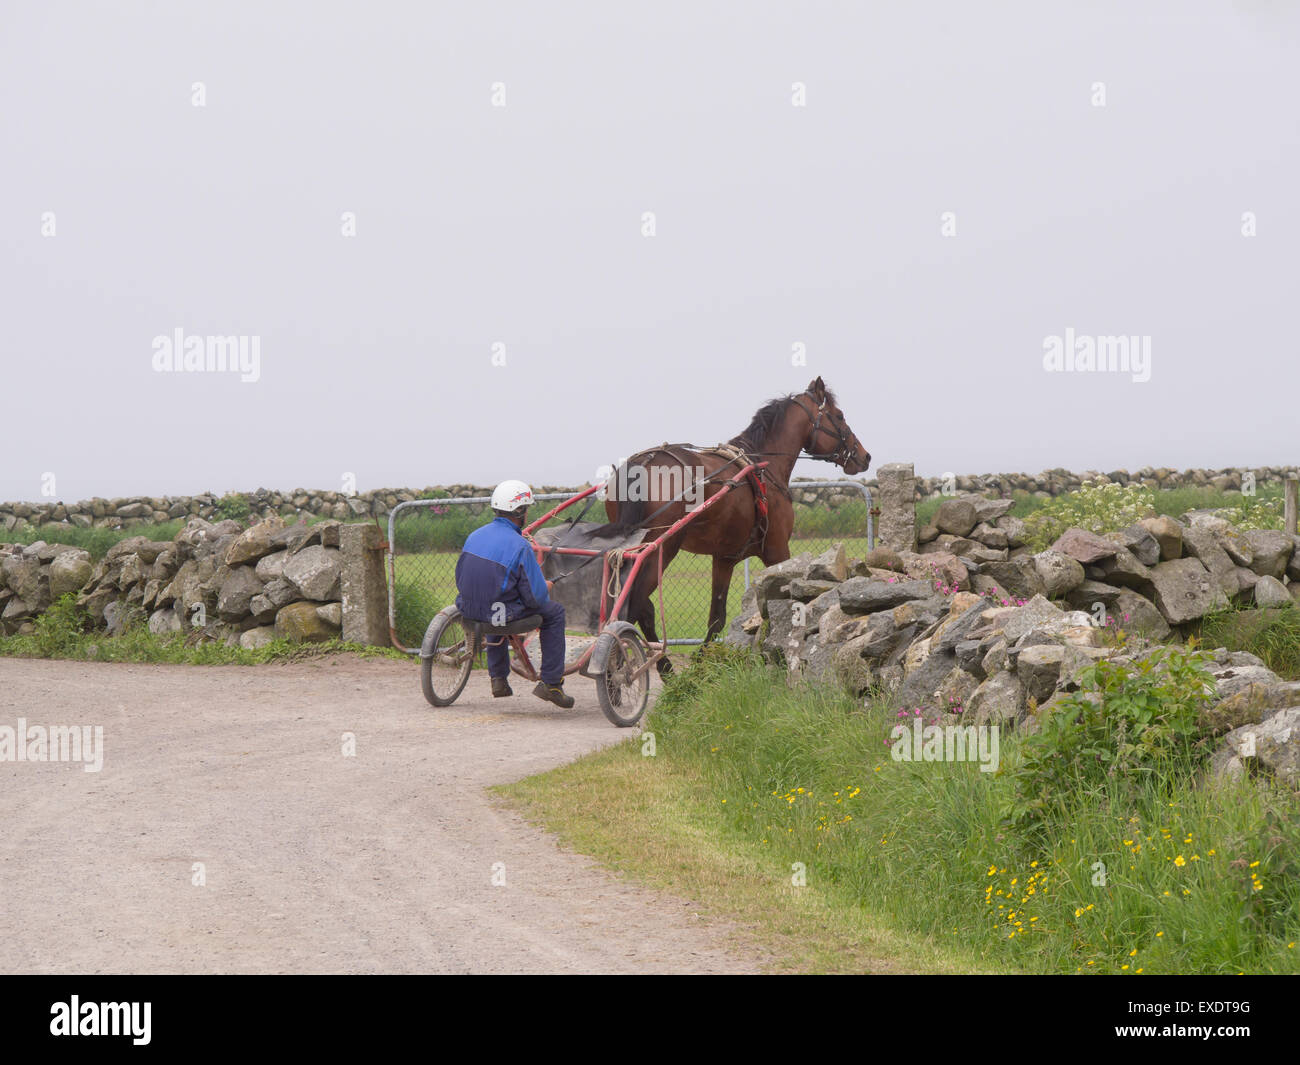 Jaeren Norway, flat agricultural landscape, fog, dirt road between stonewalls, trotting practice underway - Stock Image